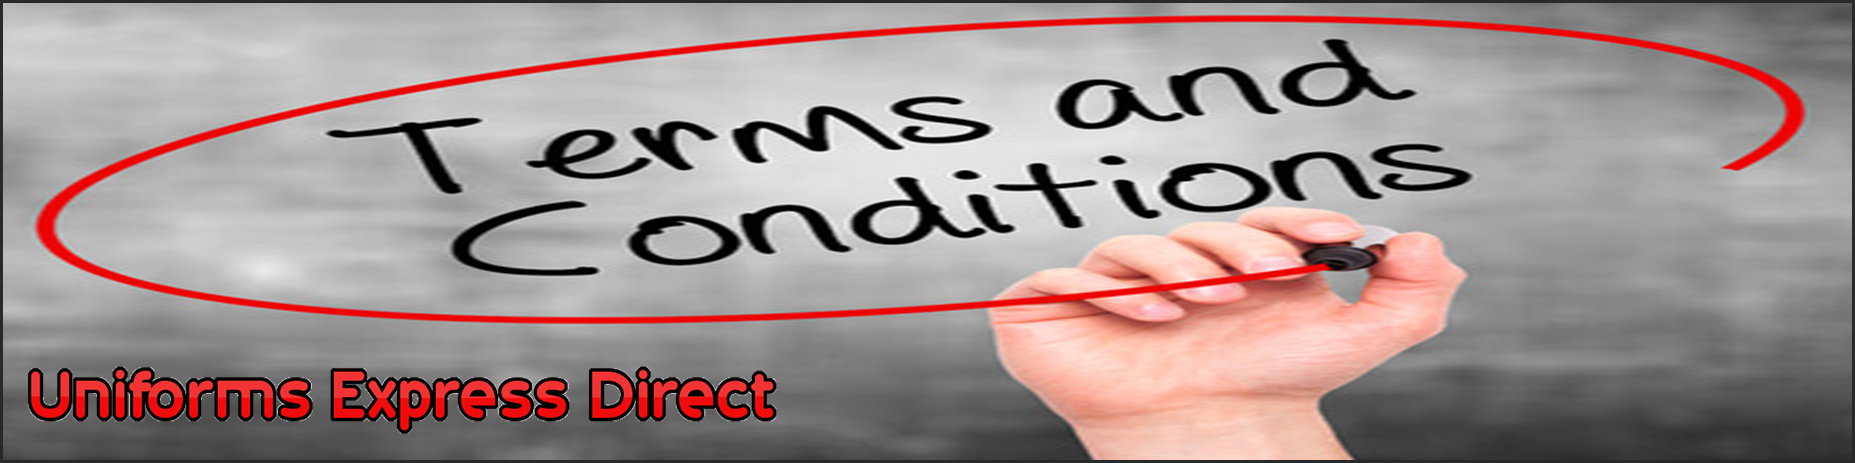 terms-and-conditions-image-ii